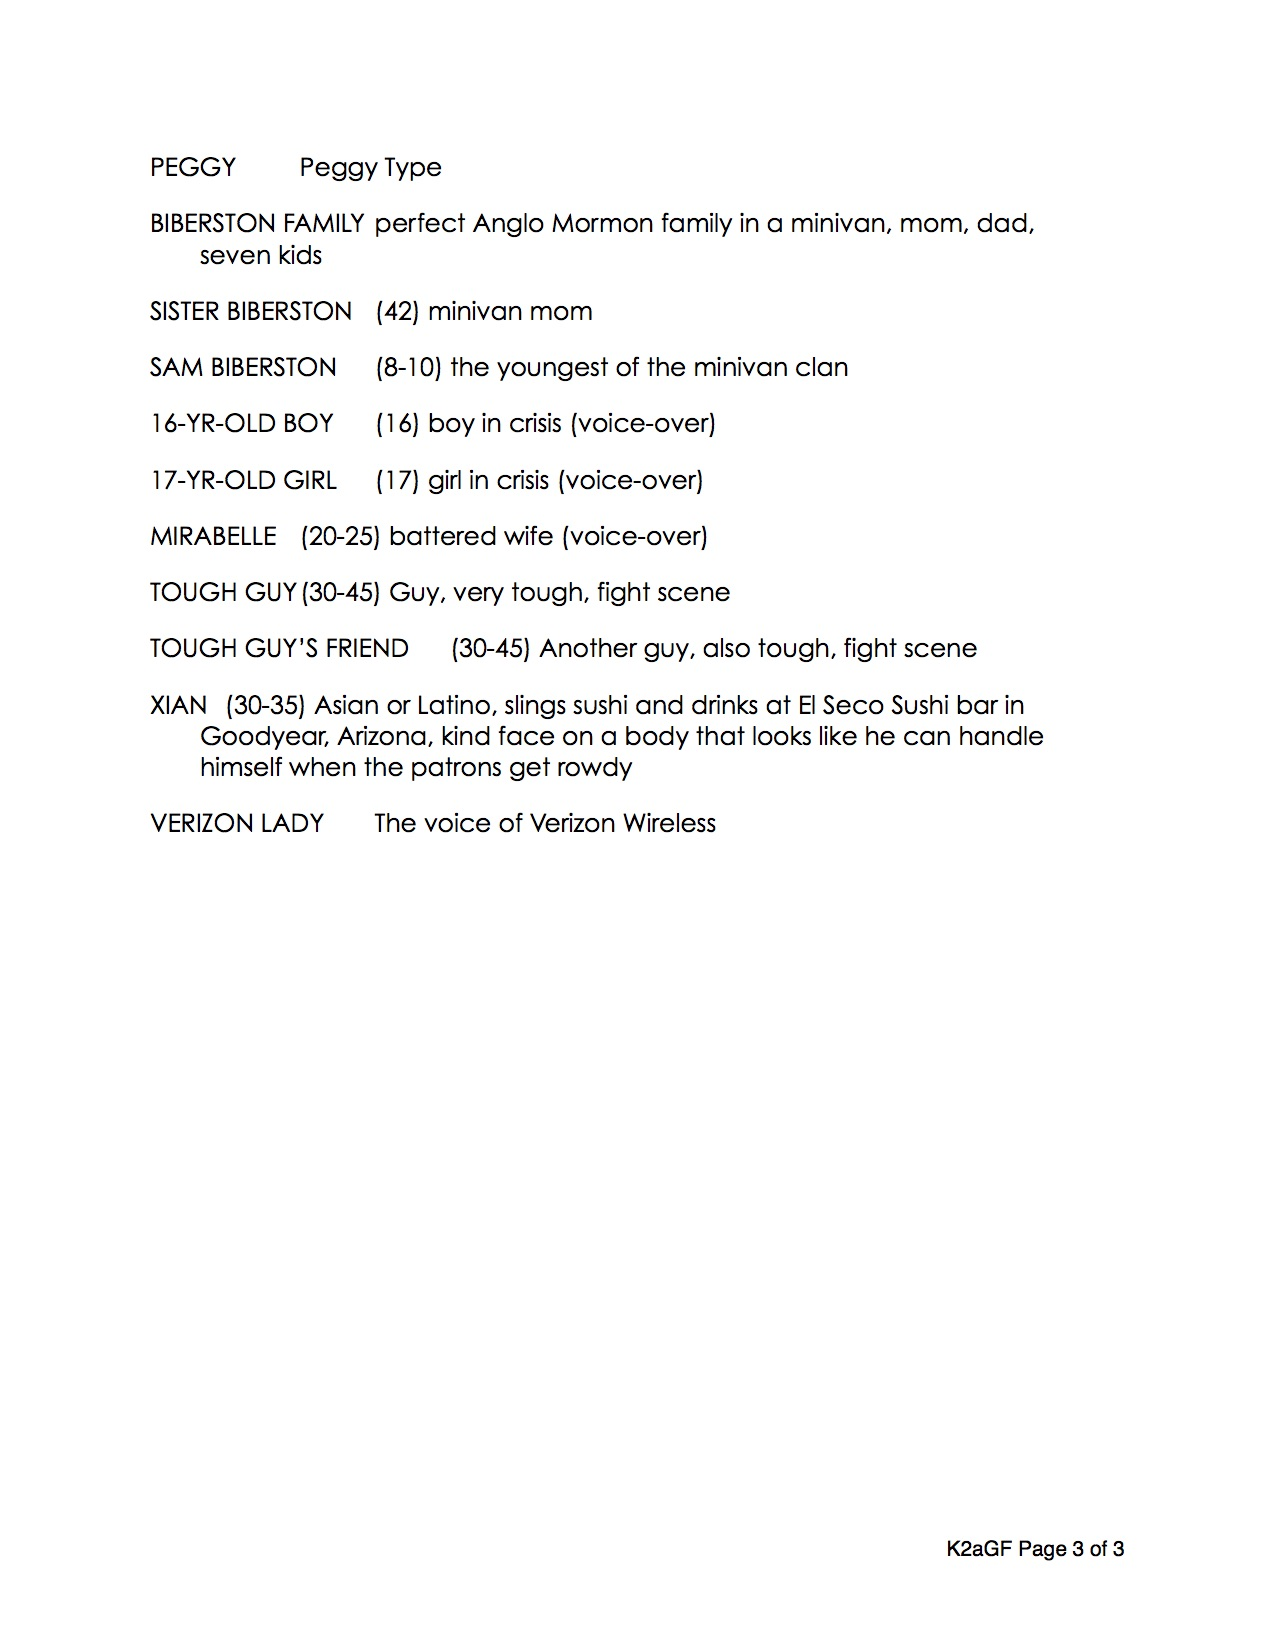 Knife to a Gunfight Feature Short-form Rundown page 3.jpg